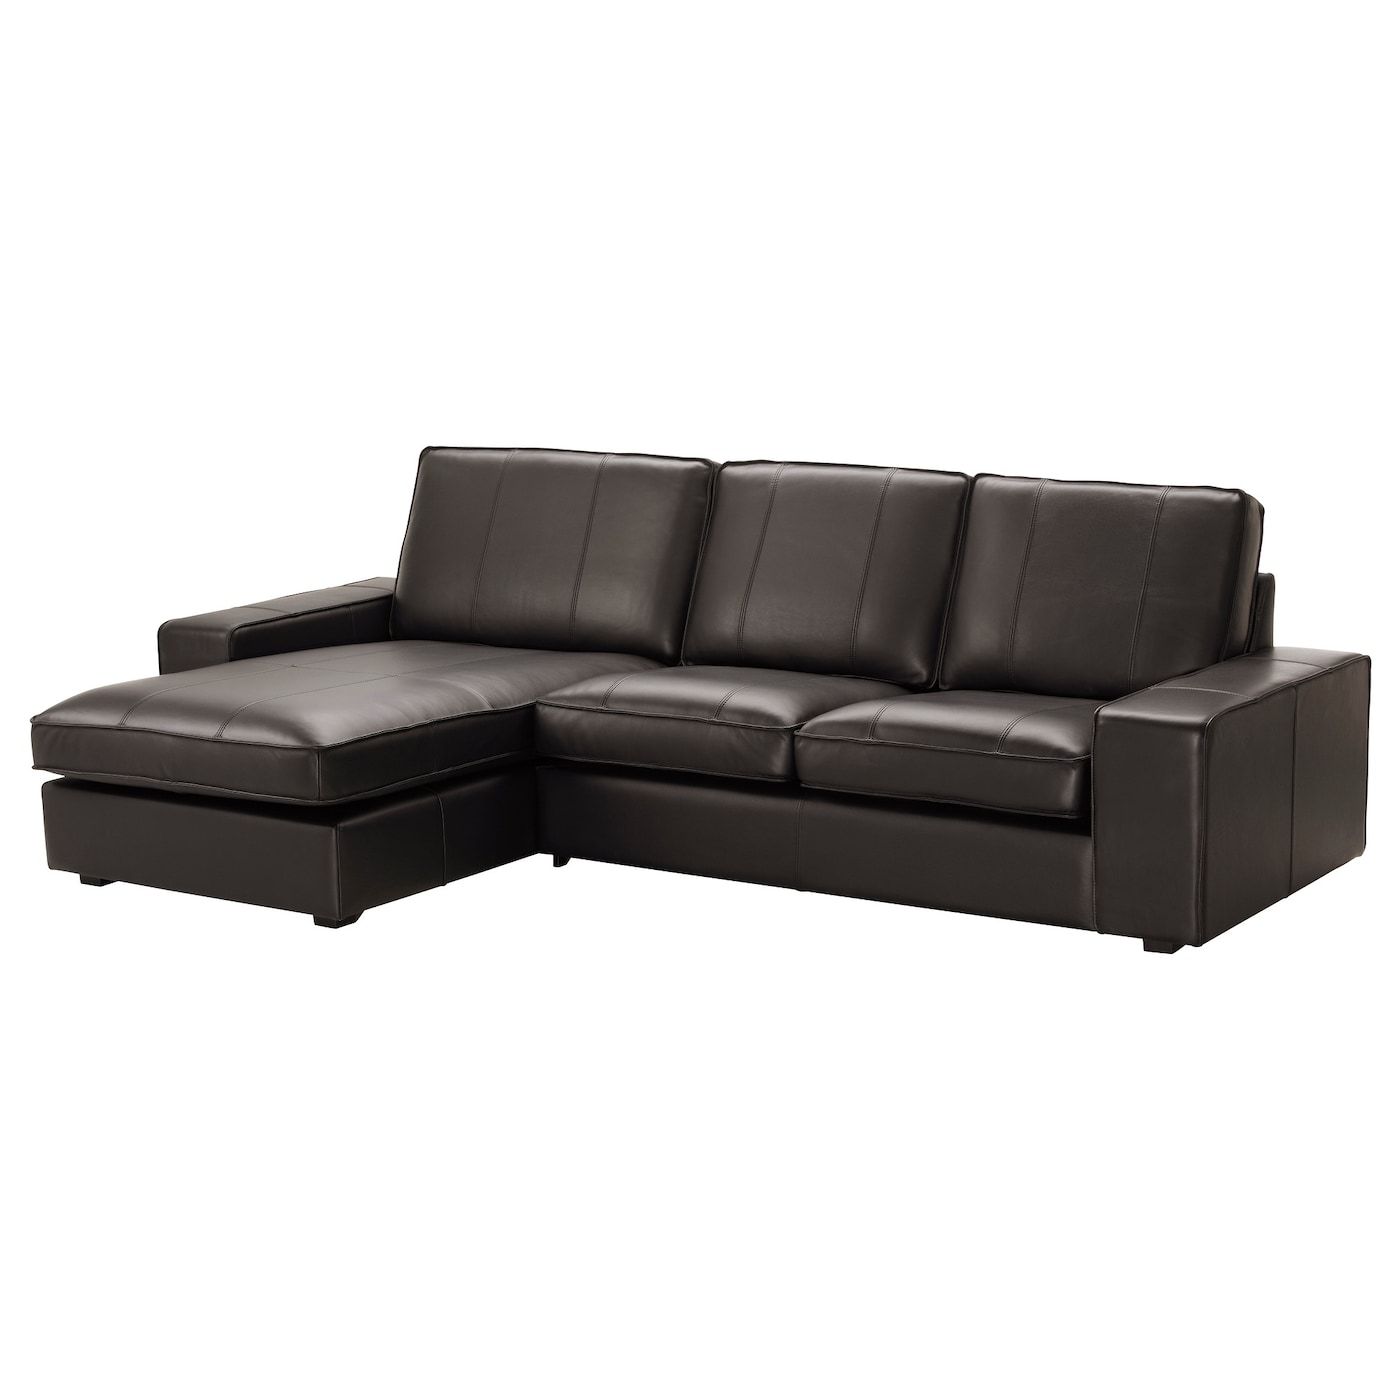 Leather coated fabric sofas ikea for Chaise longue design cuir